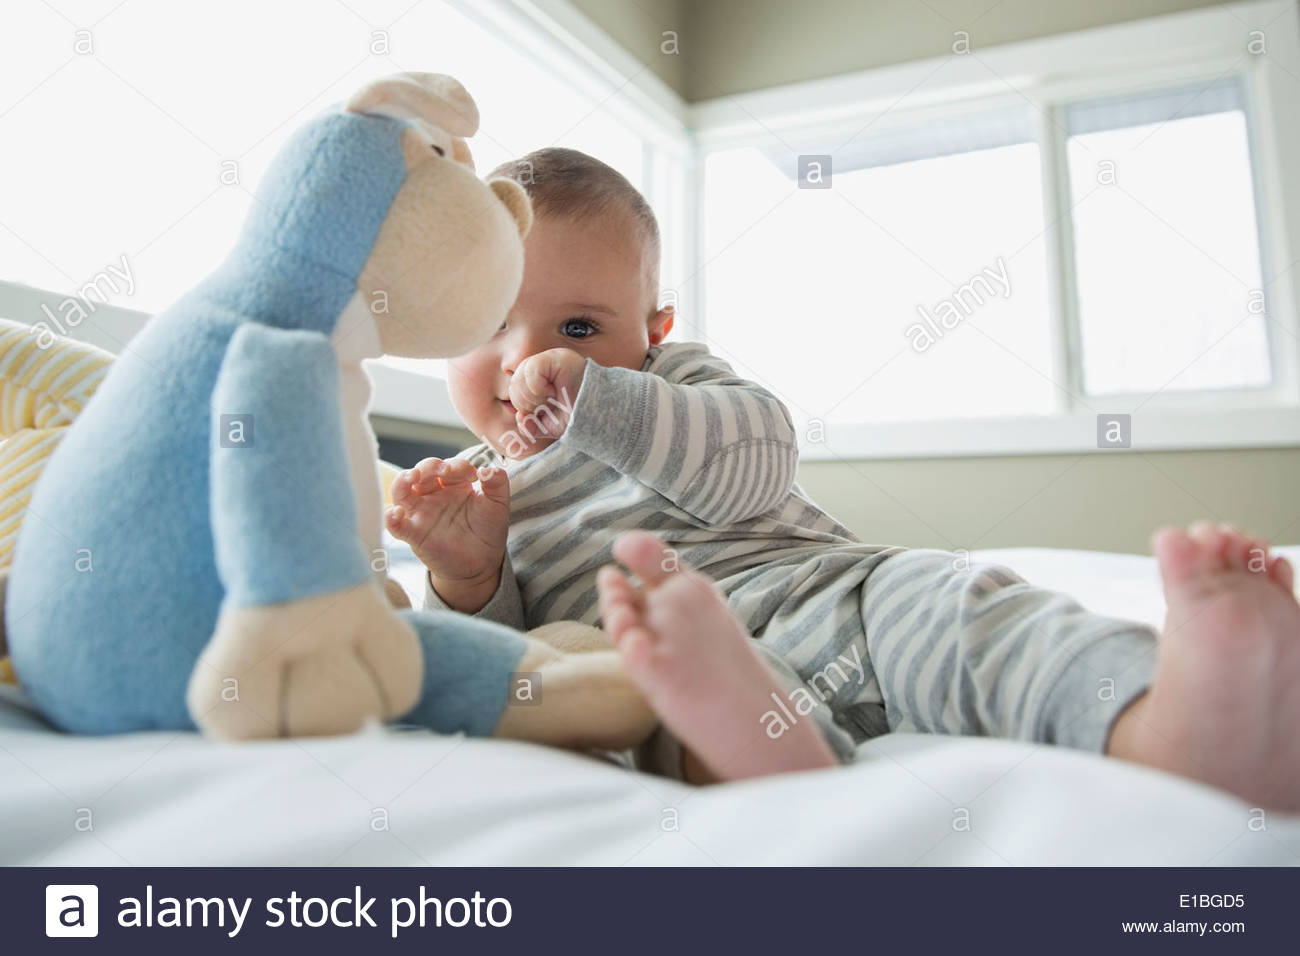 Baby with stuffed animal on bed - Stock Image